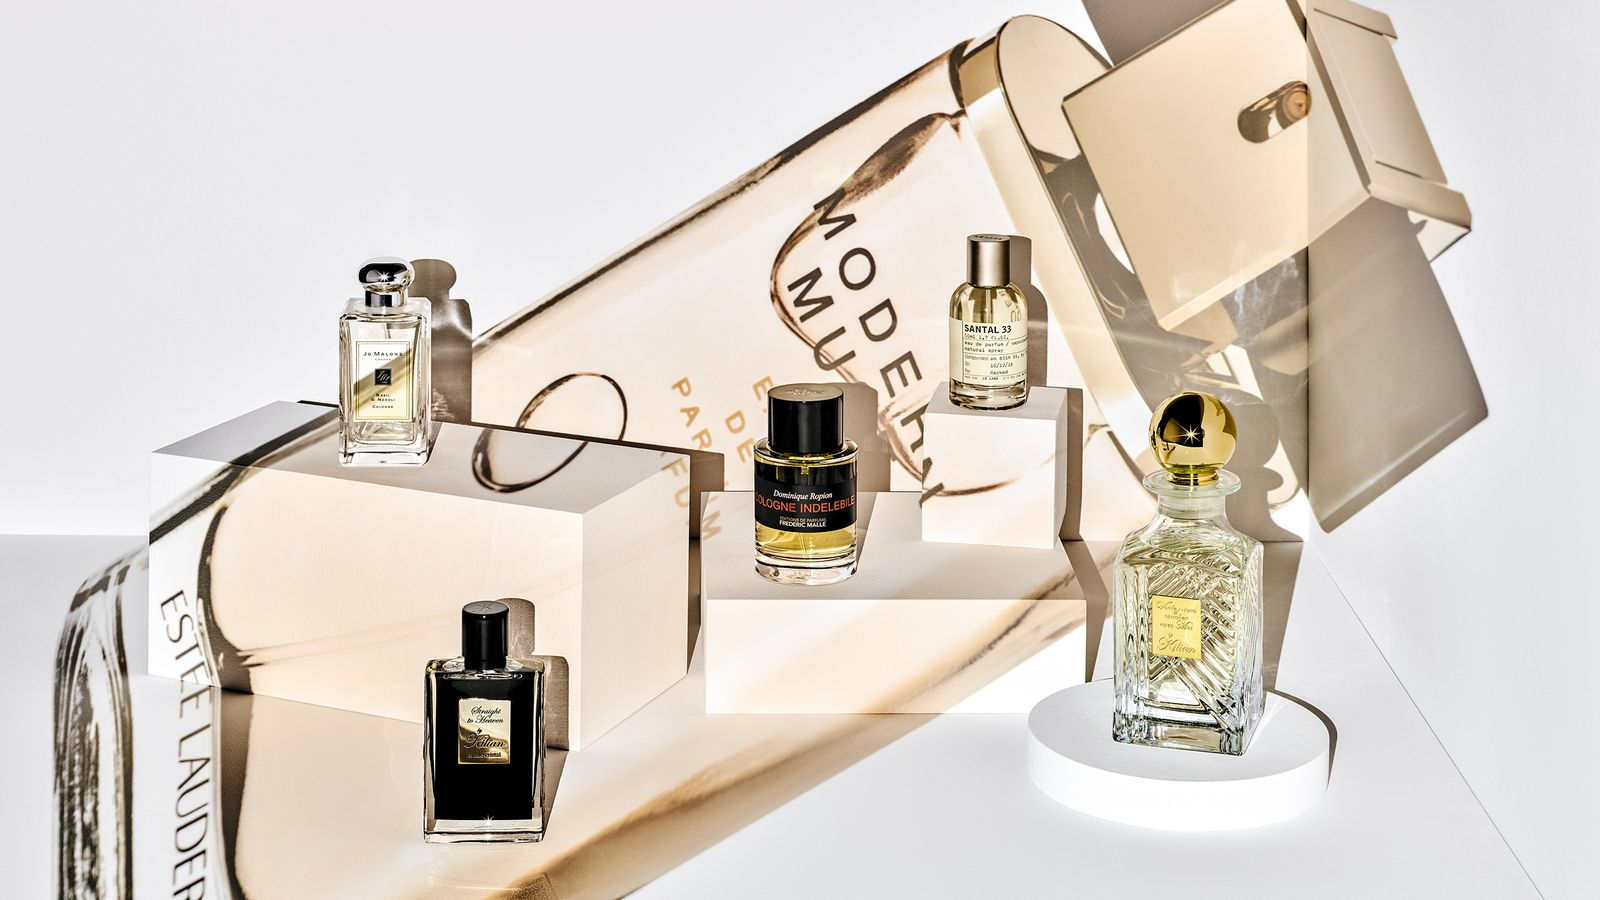 Estée Lauder Stays Big by Buying Small